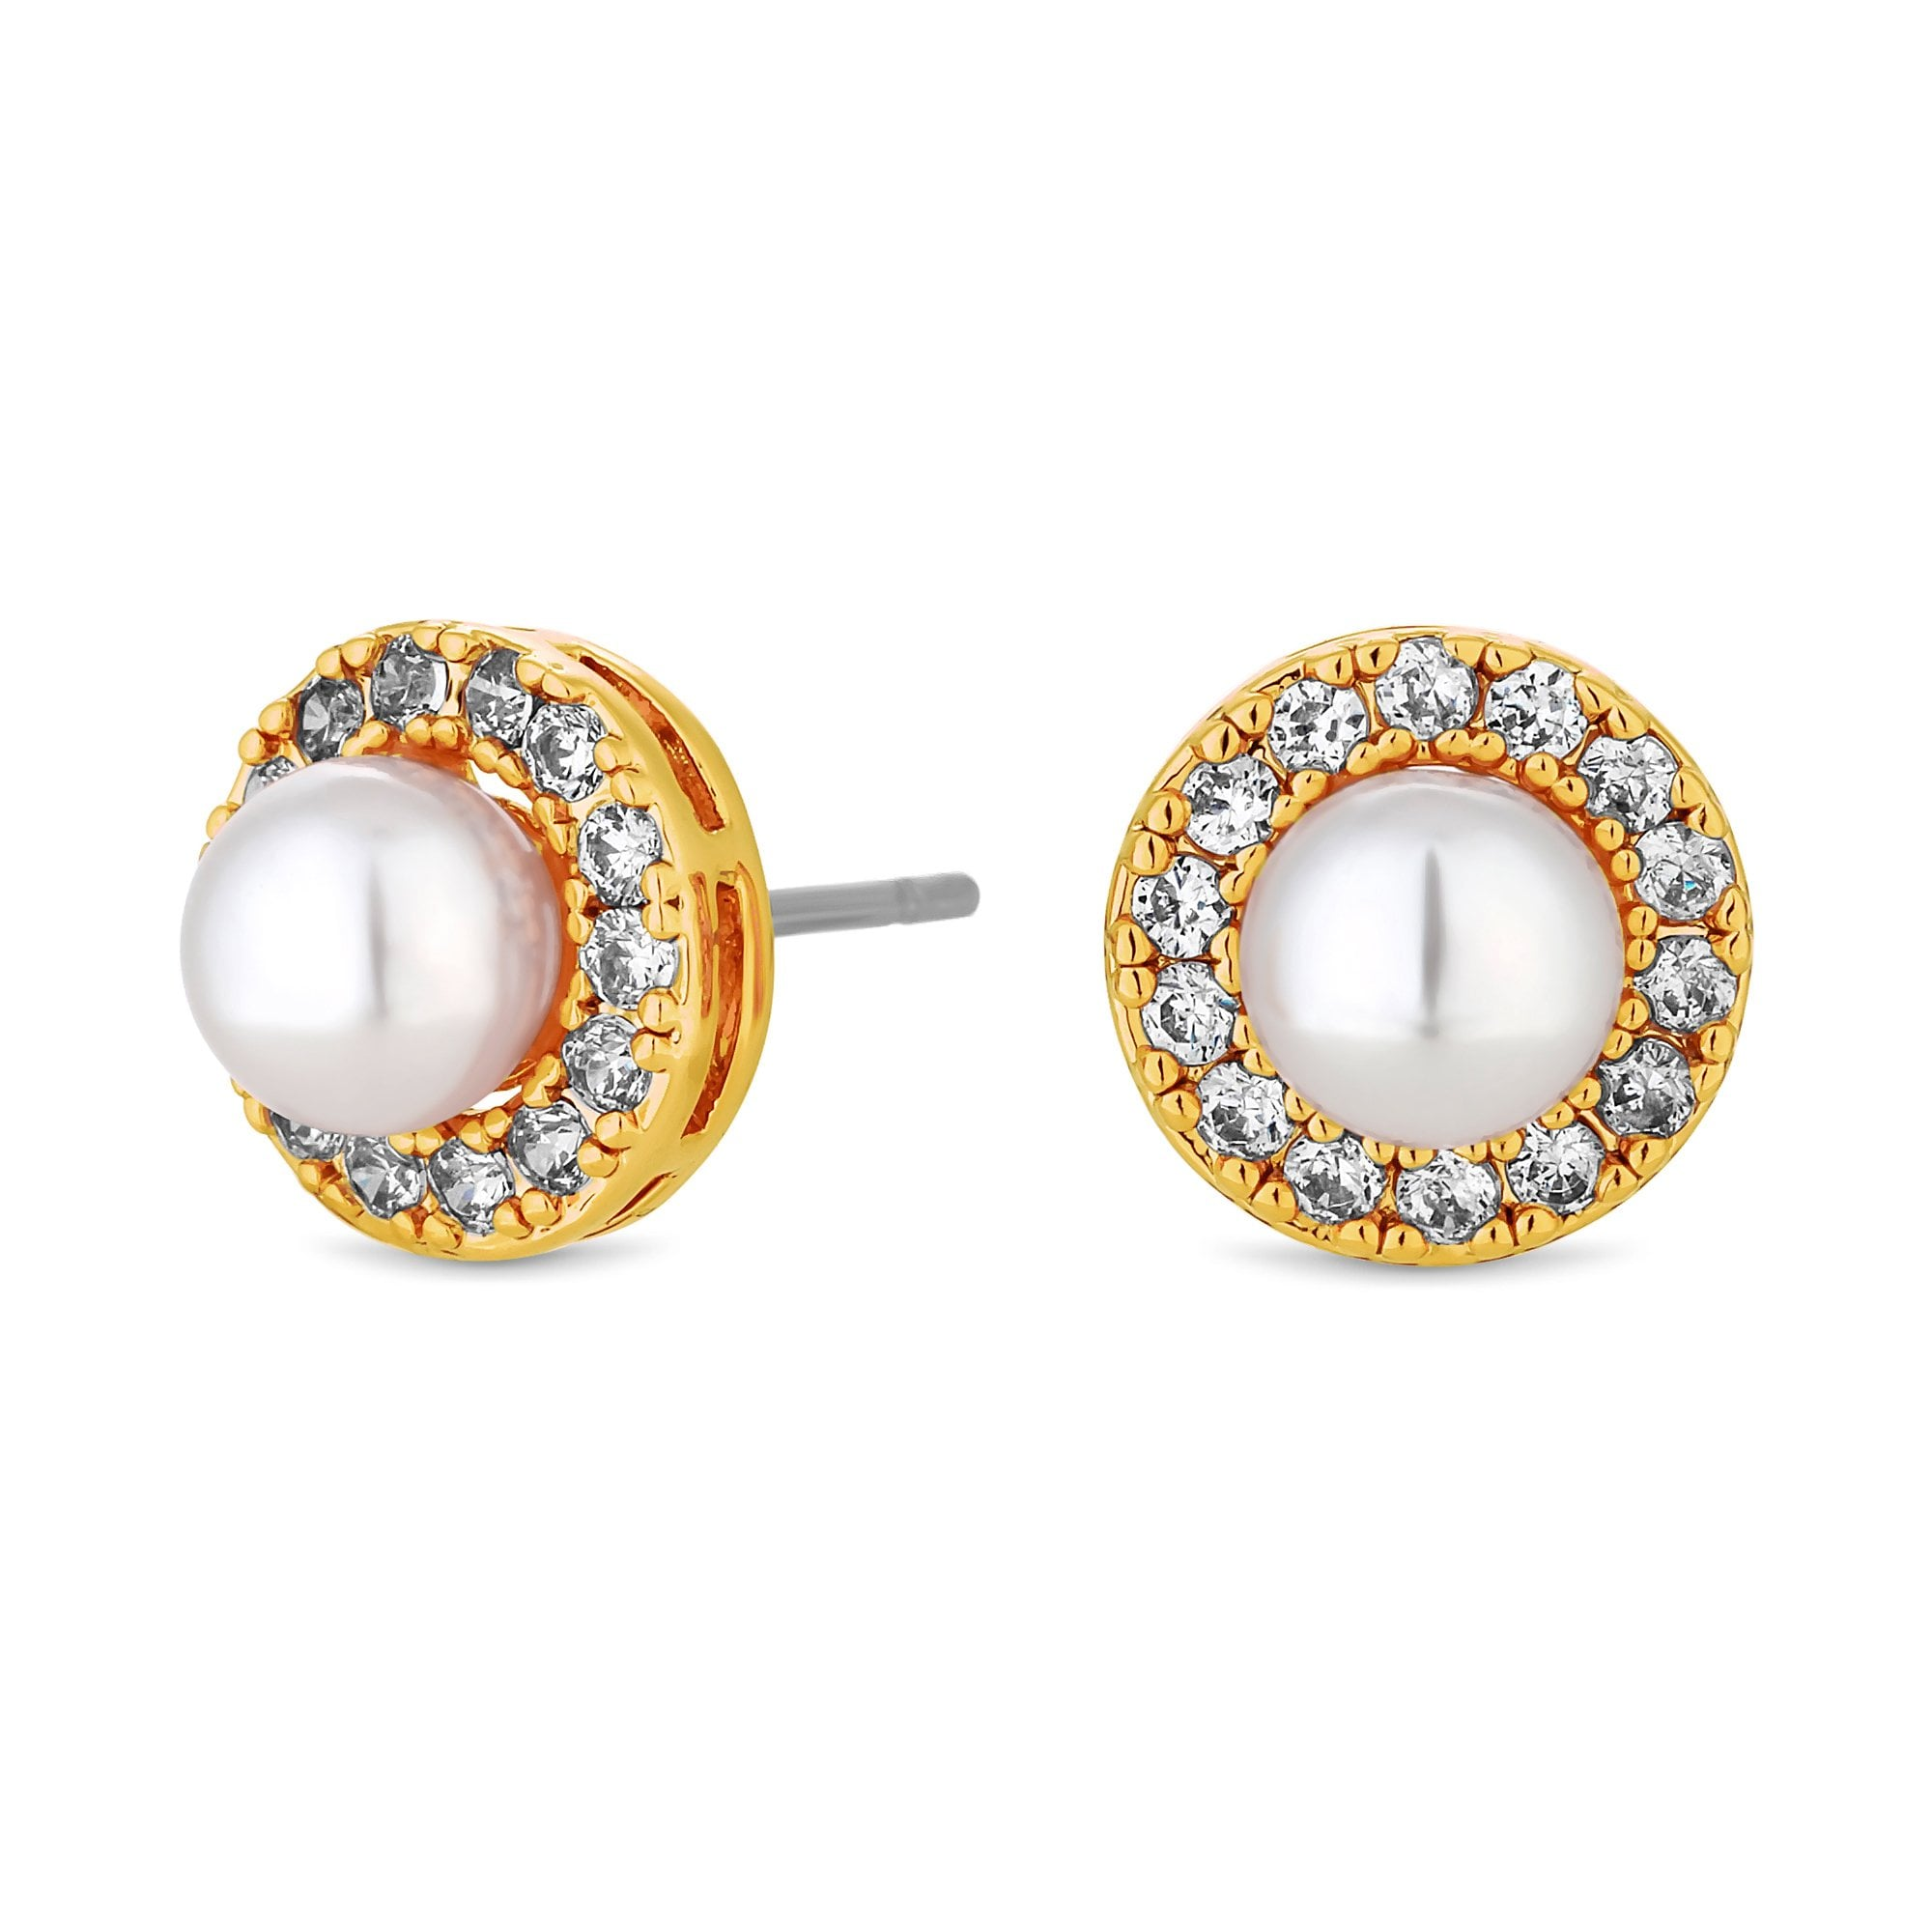 db636de8b35 Jon Richard Gold Plated Clear Crystal Pave Surround Centre Pearl Stud  Earring